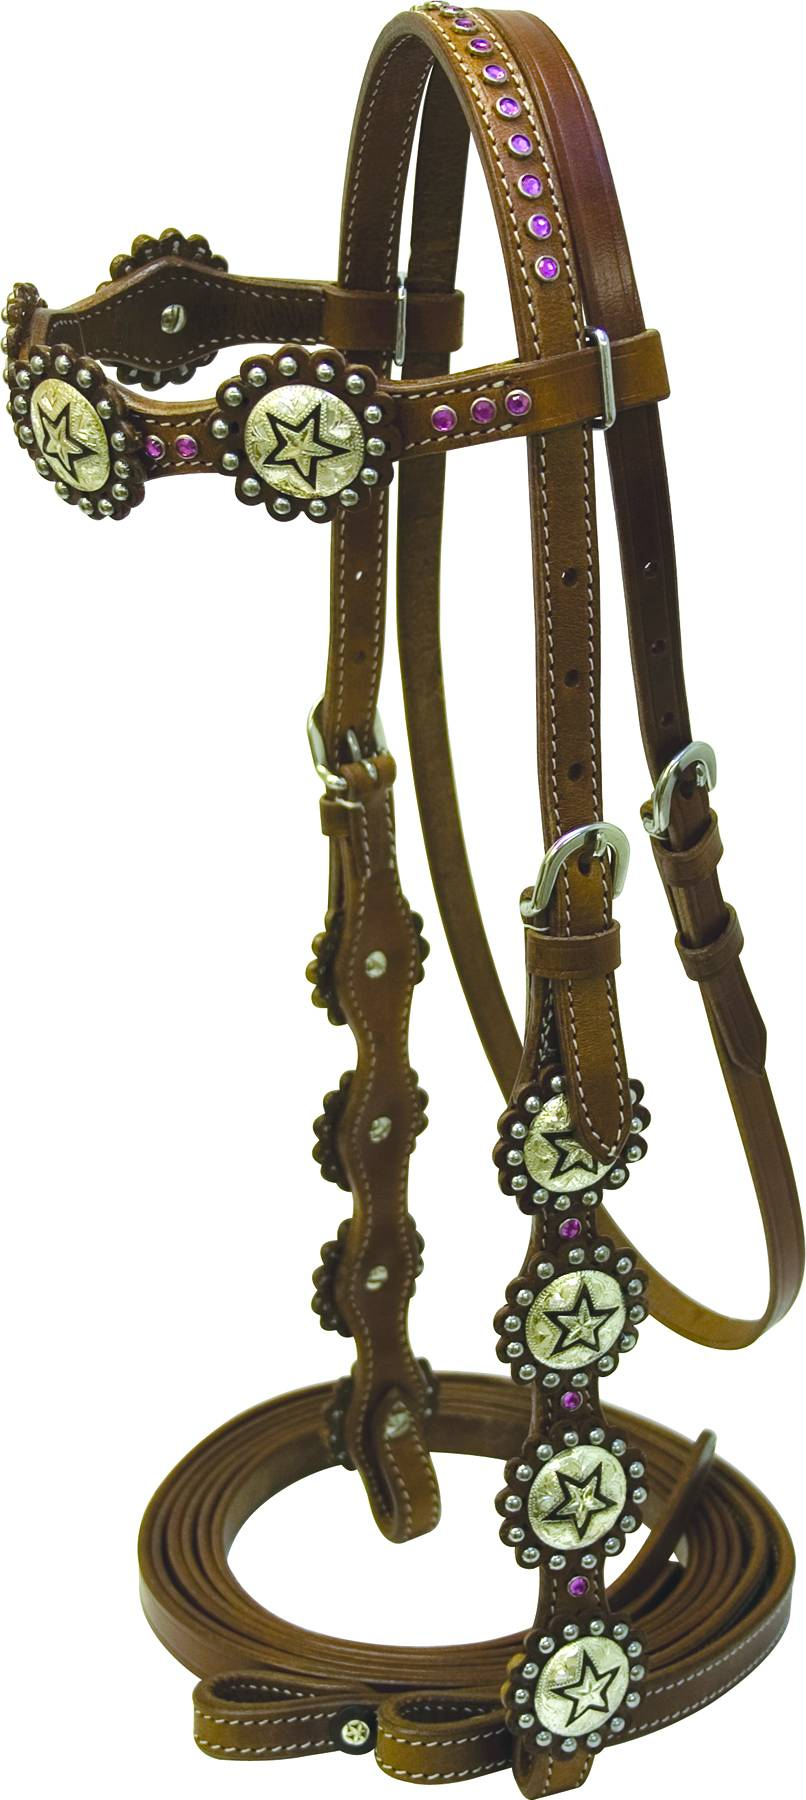 Cowboy Pro Bridle Scalloped with Reins